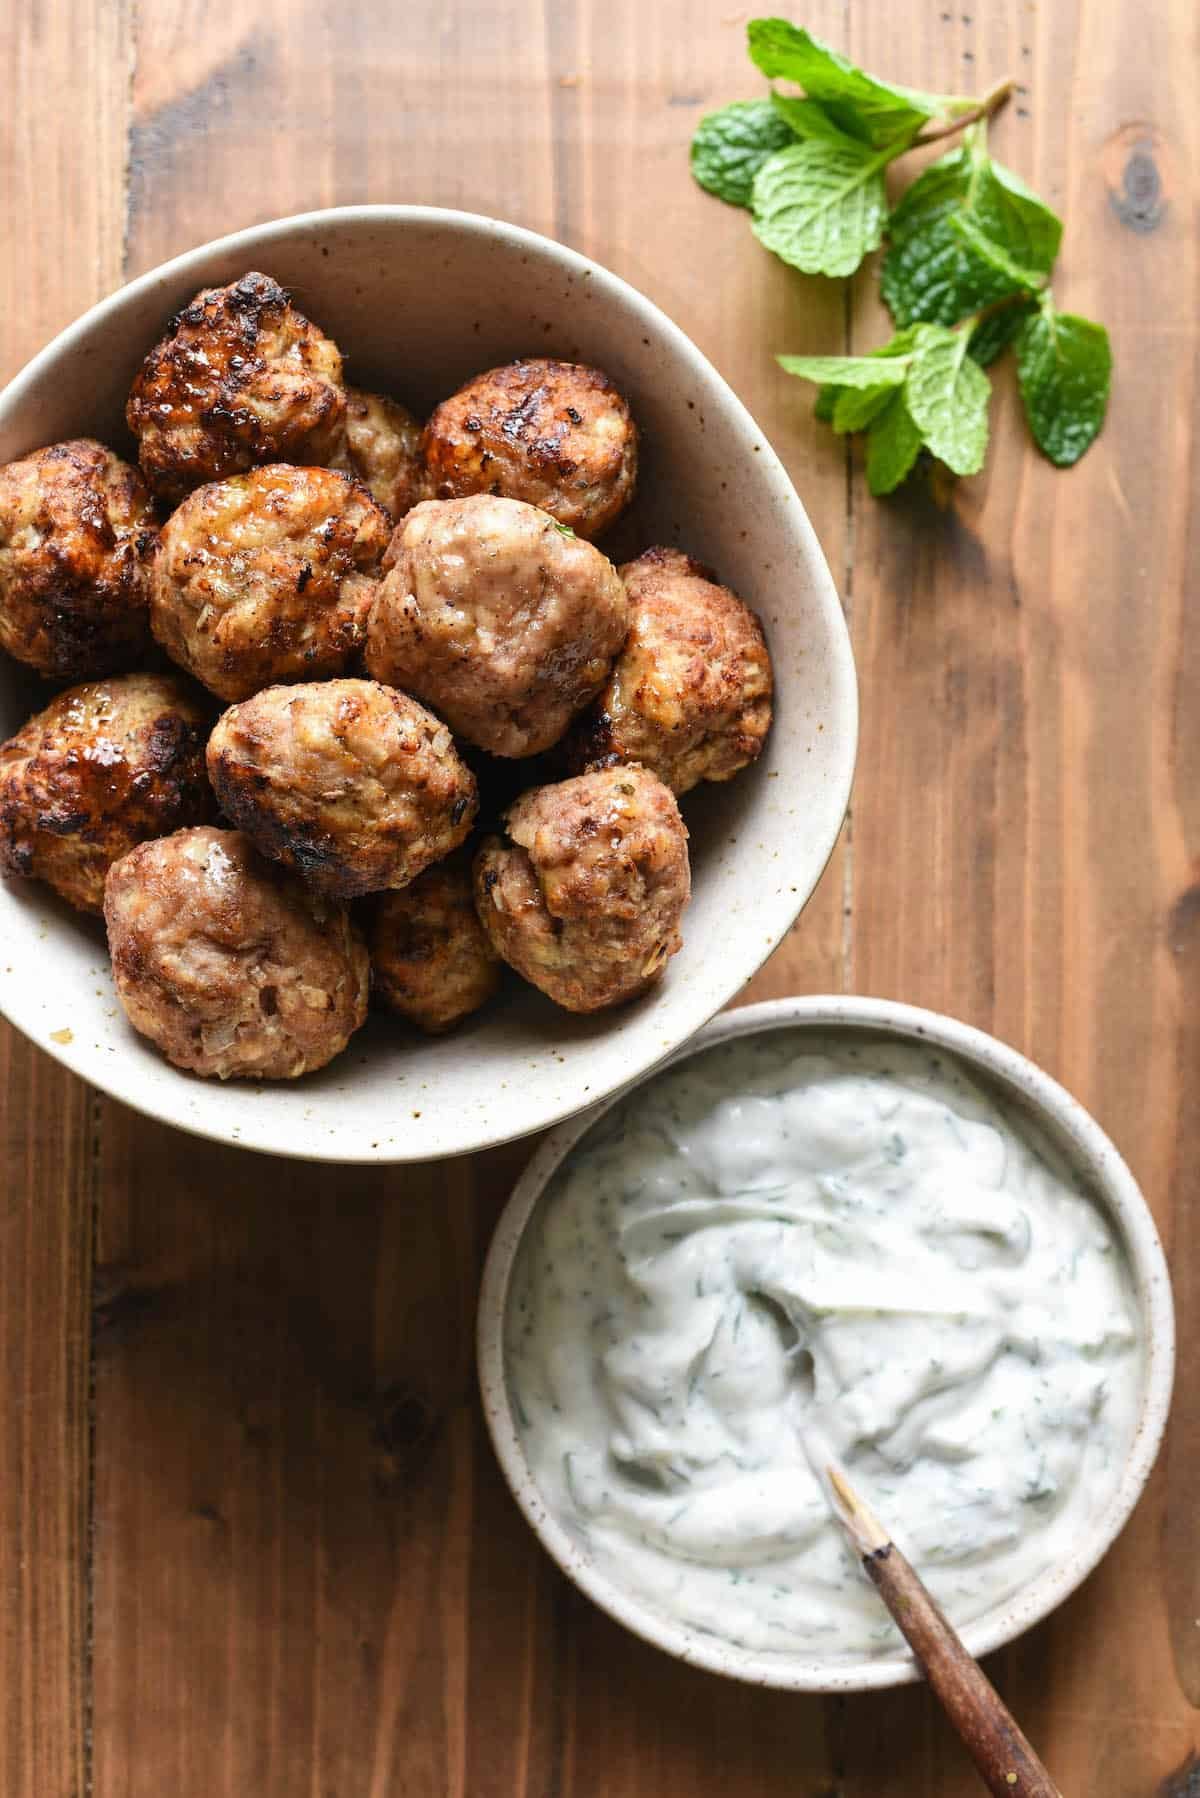 A bowl of air fryer turkey meatballs and a bowl of herbed yogurt sauce, with a mint sprig.